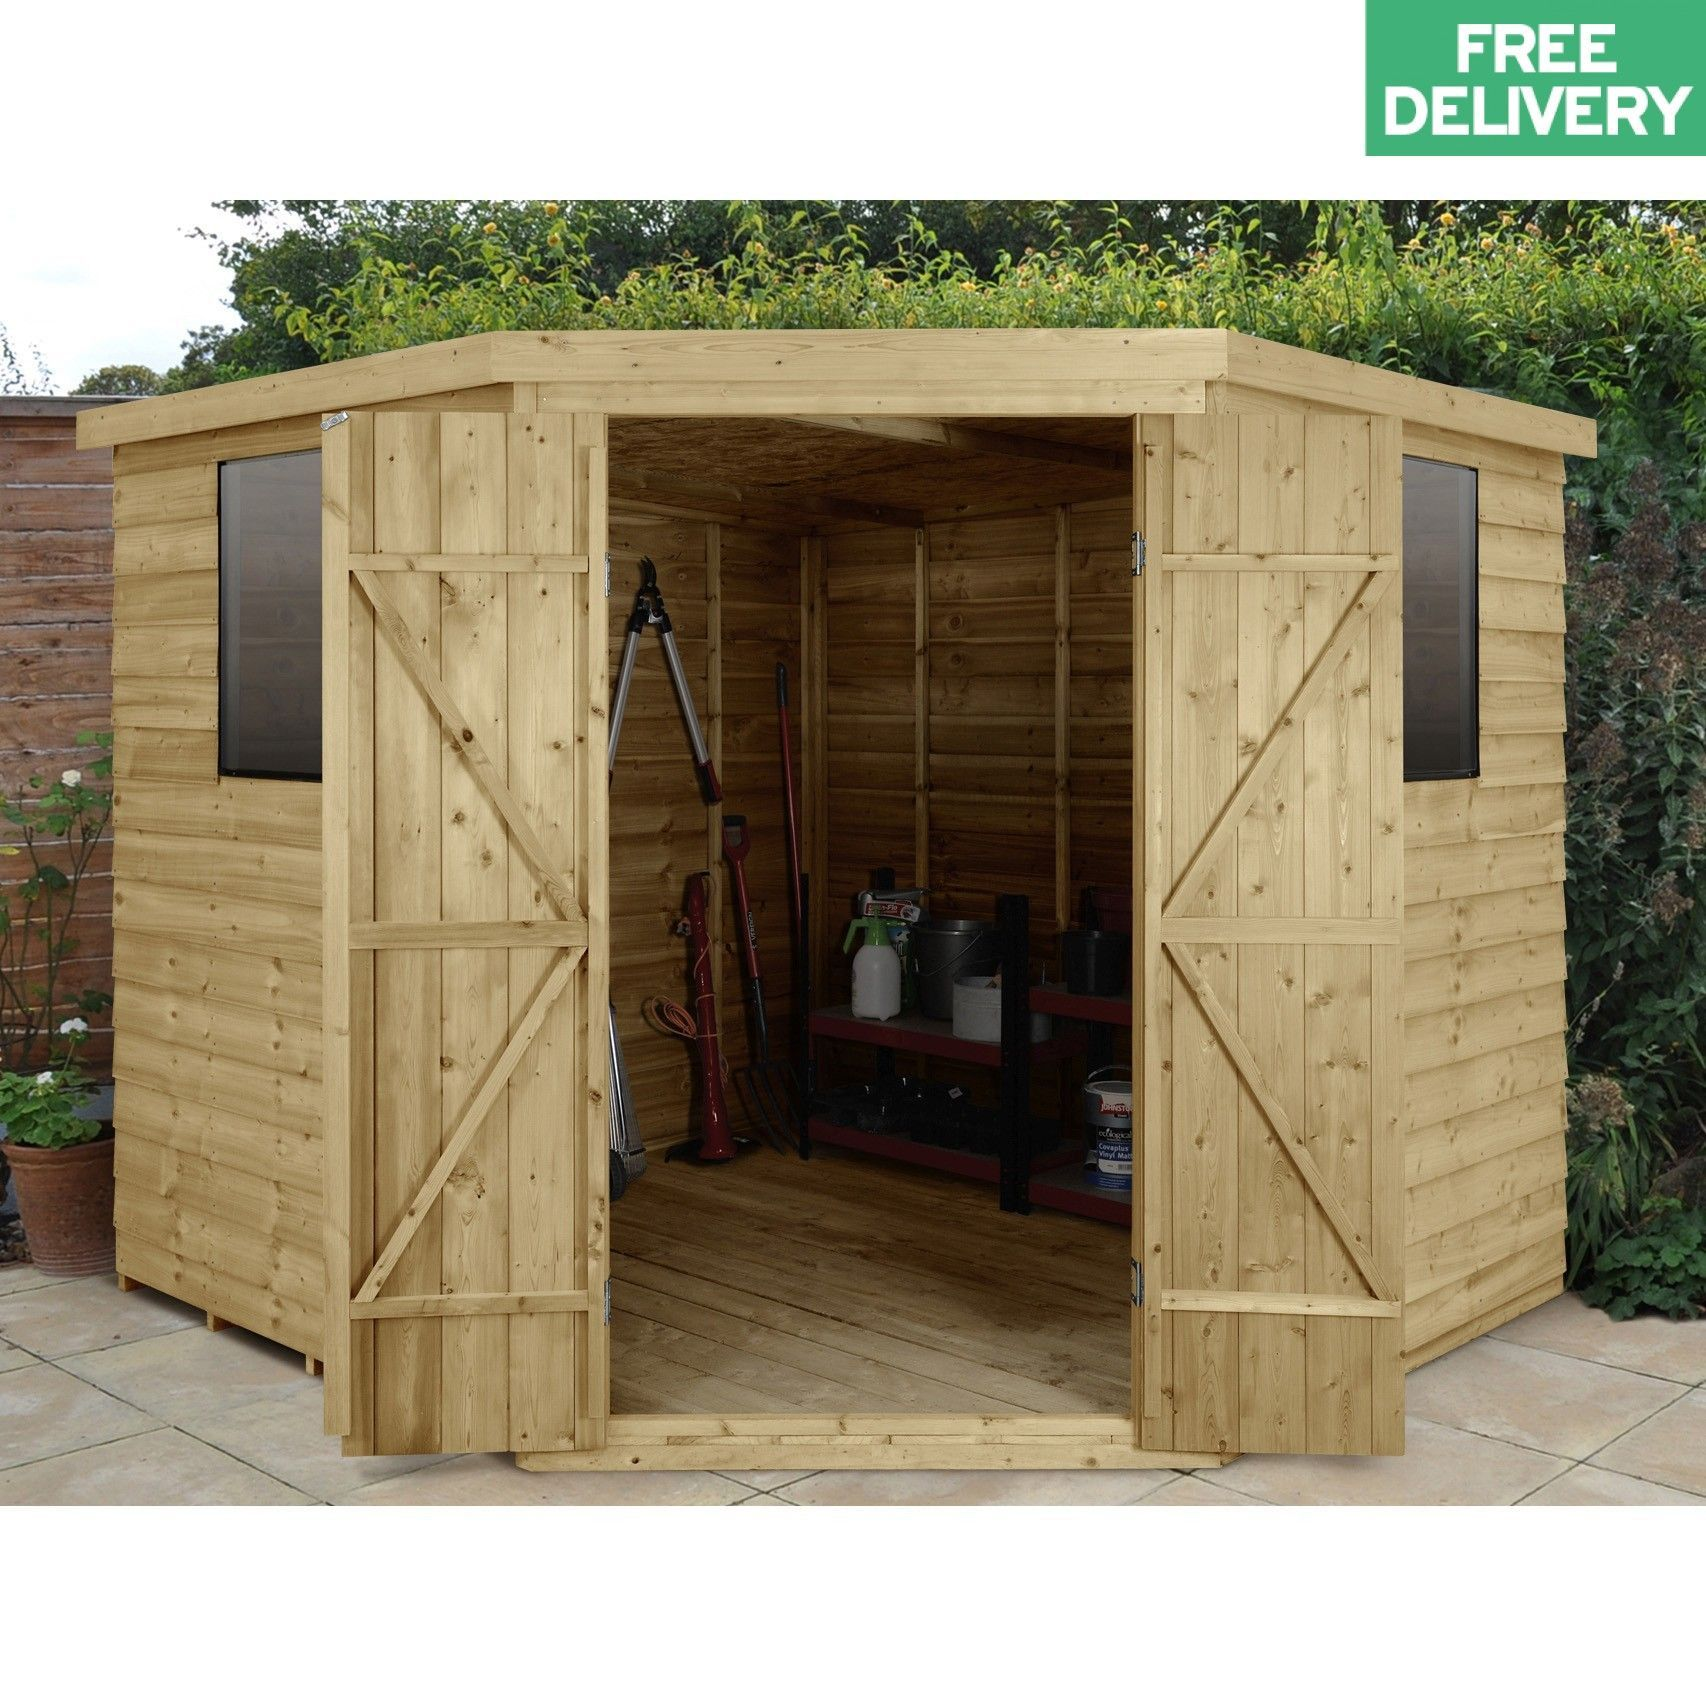 Overlap Pressure Treated 8x8 Corner Shed 8x8 Corner Overlap Pressure Shed Treated In 2020 Corner Sheds Wooden Sheds Building A Shed